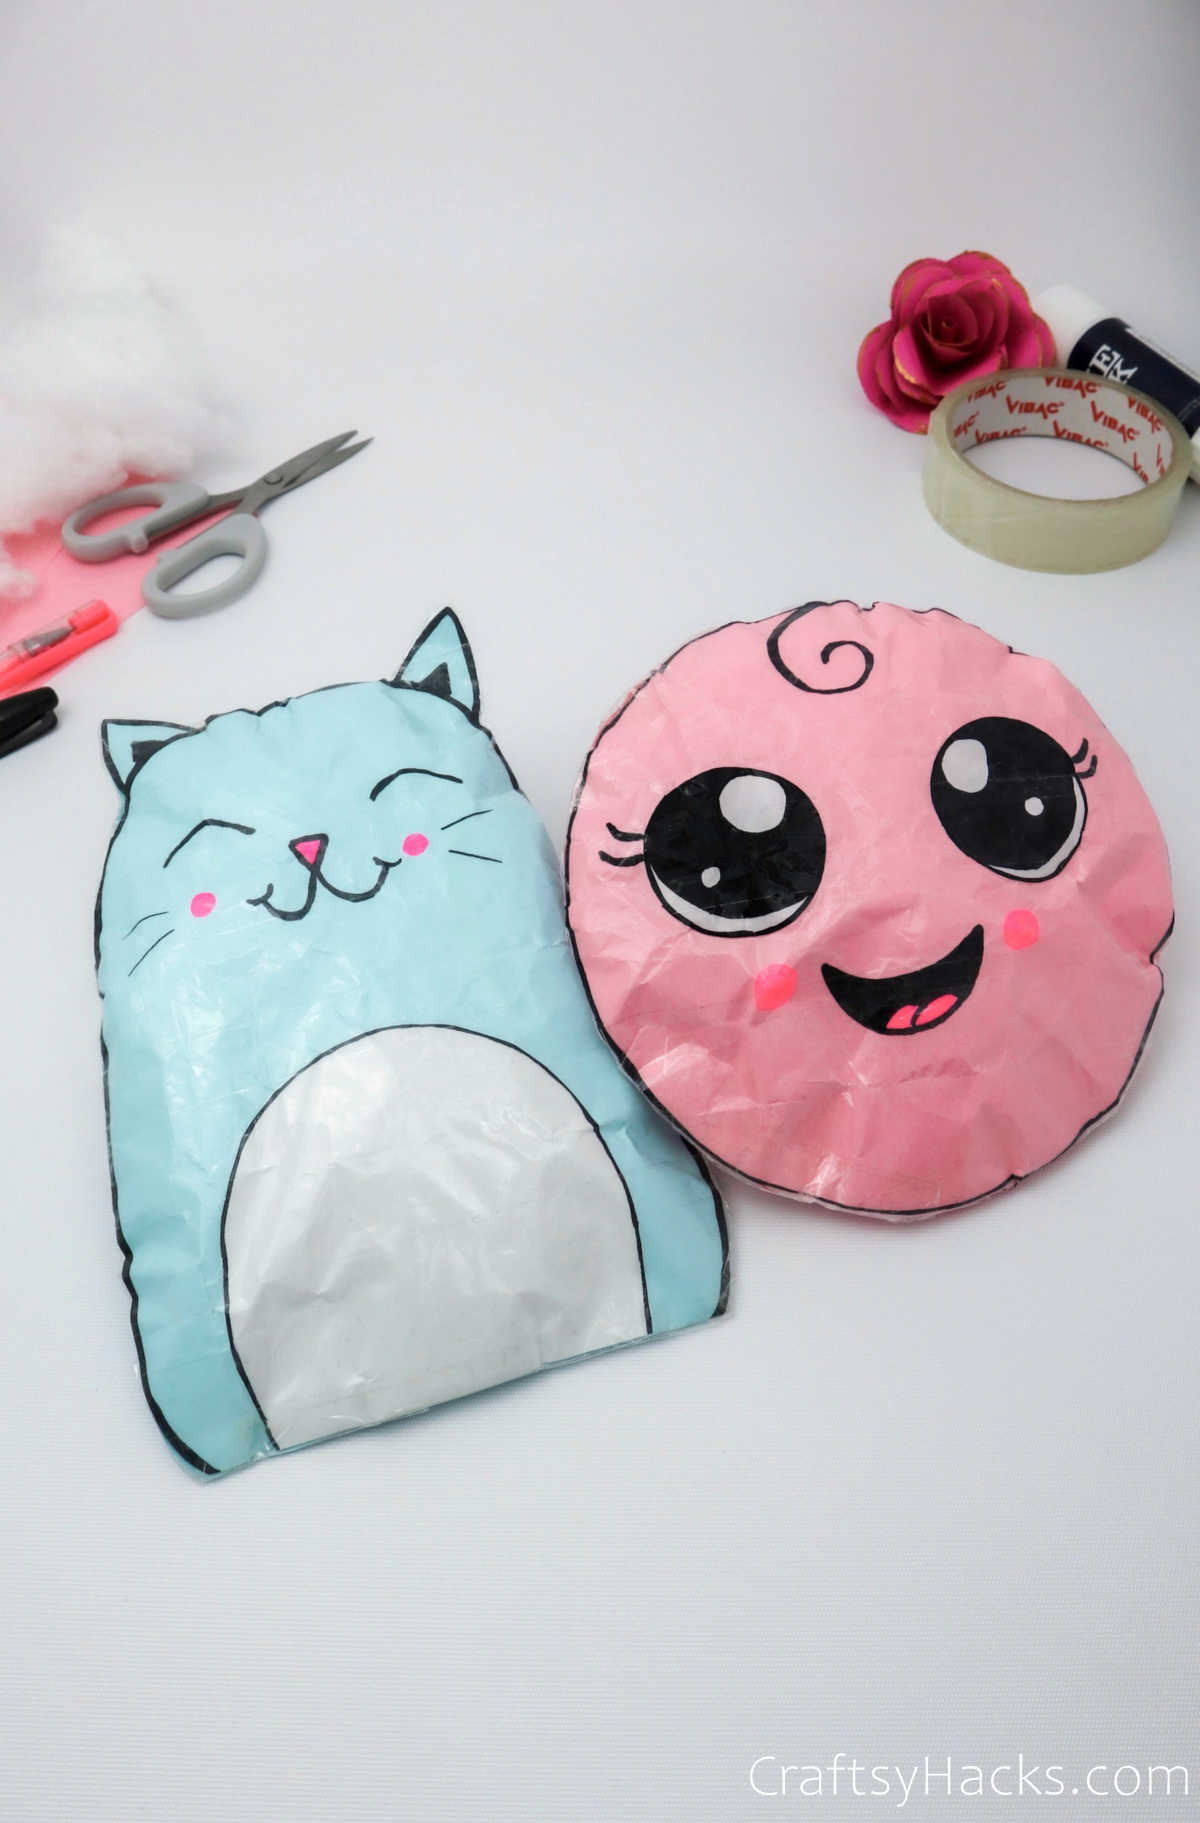 completed DIY paper squishies